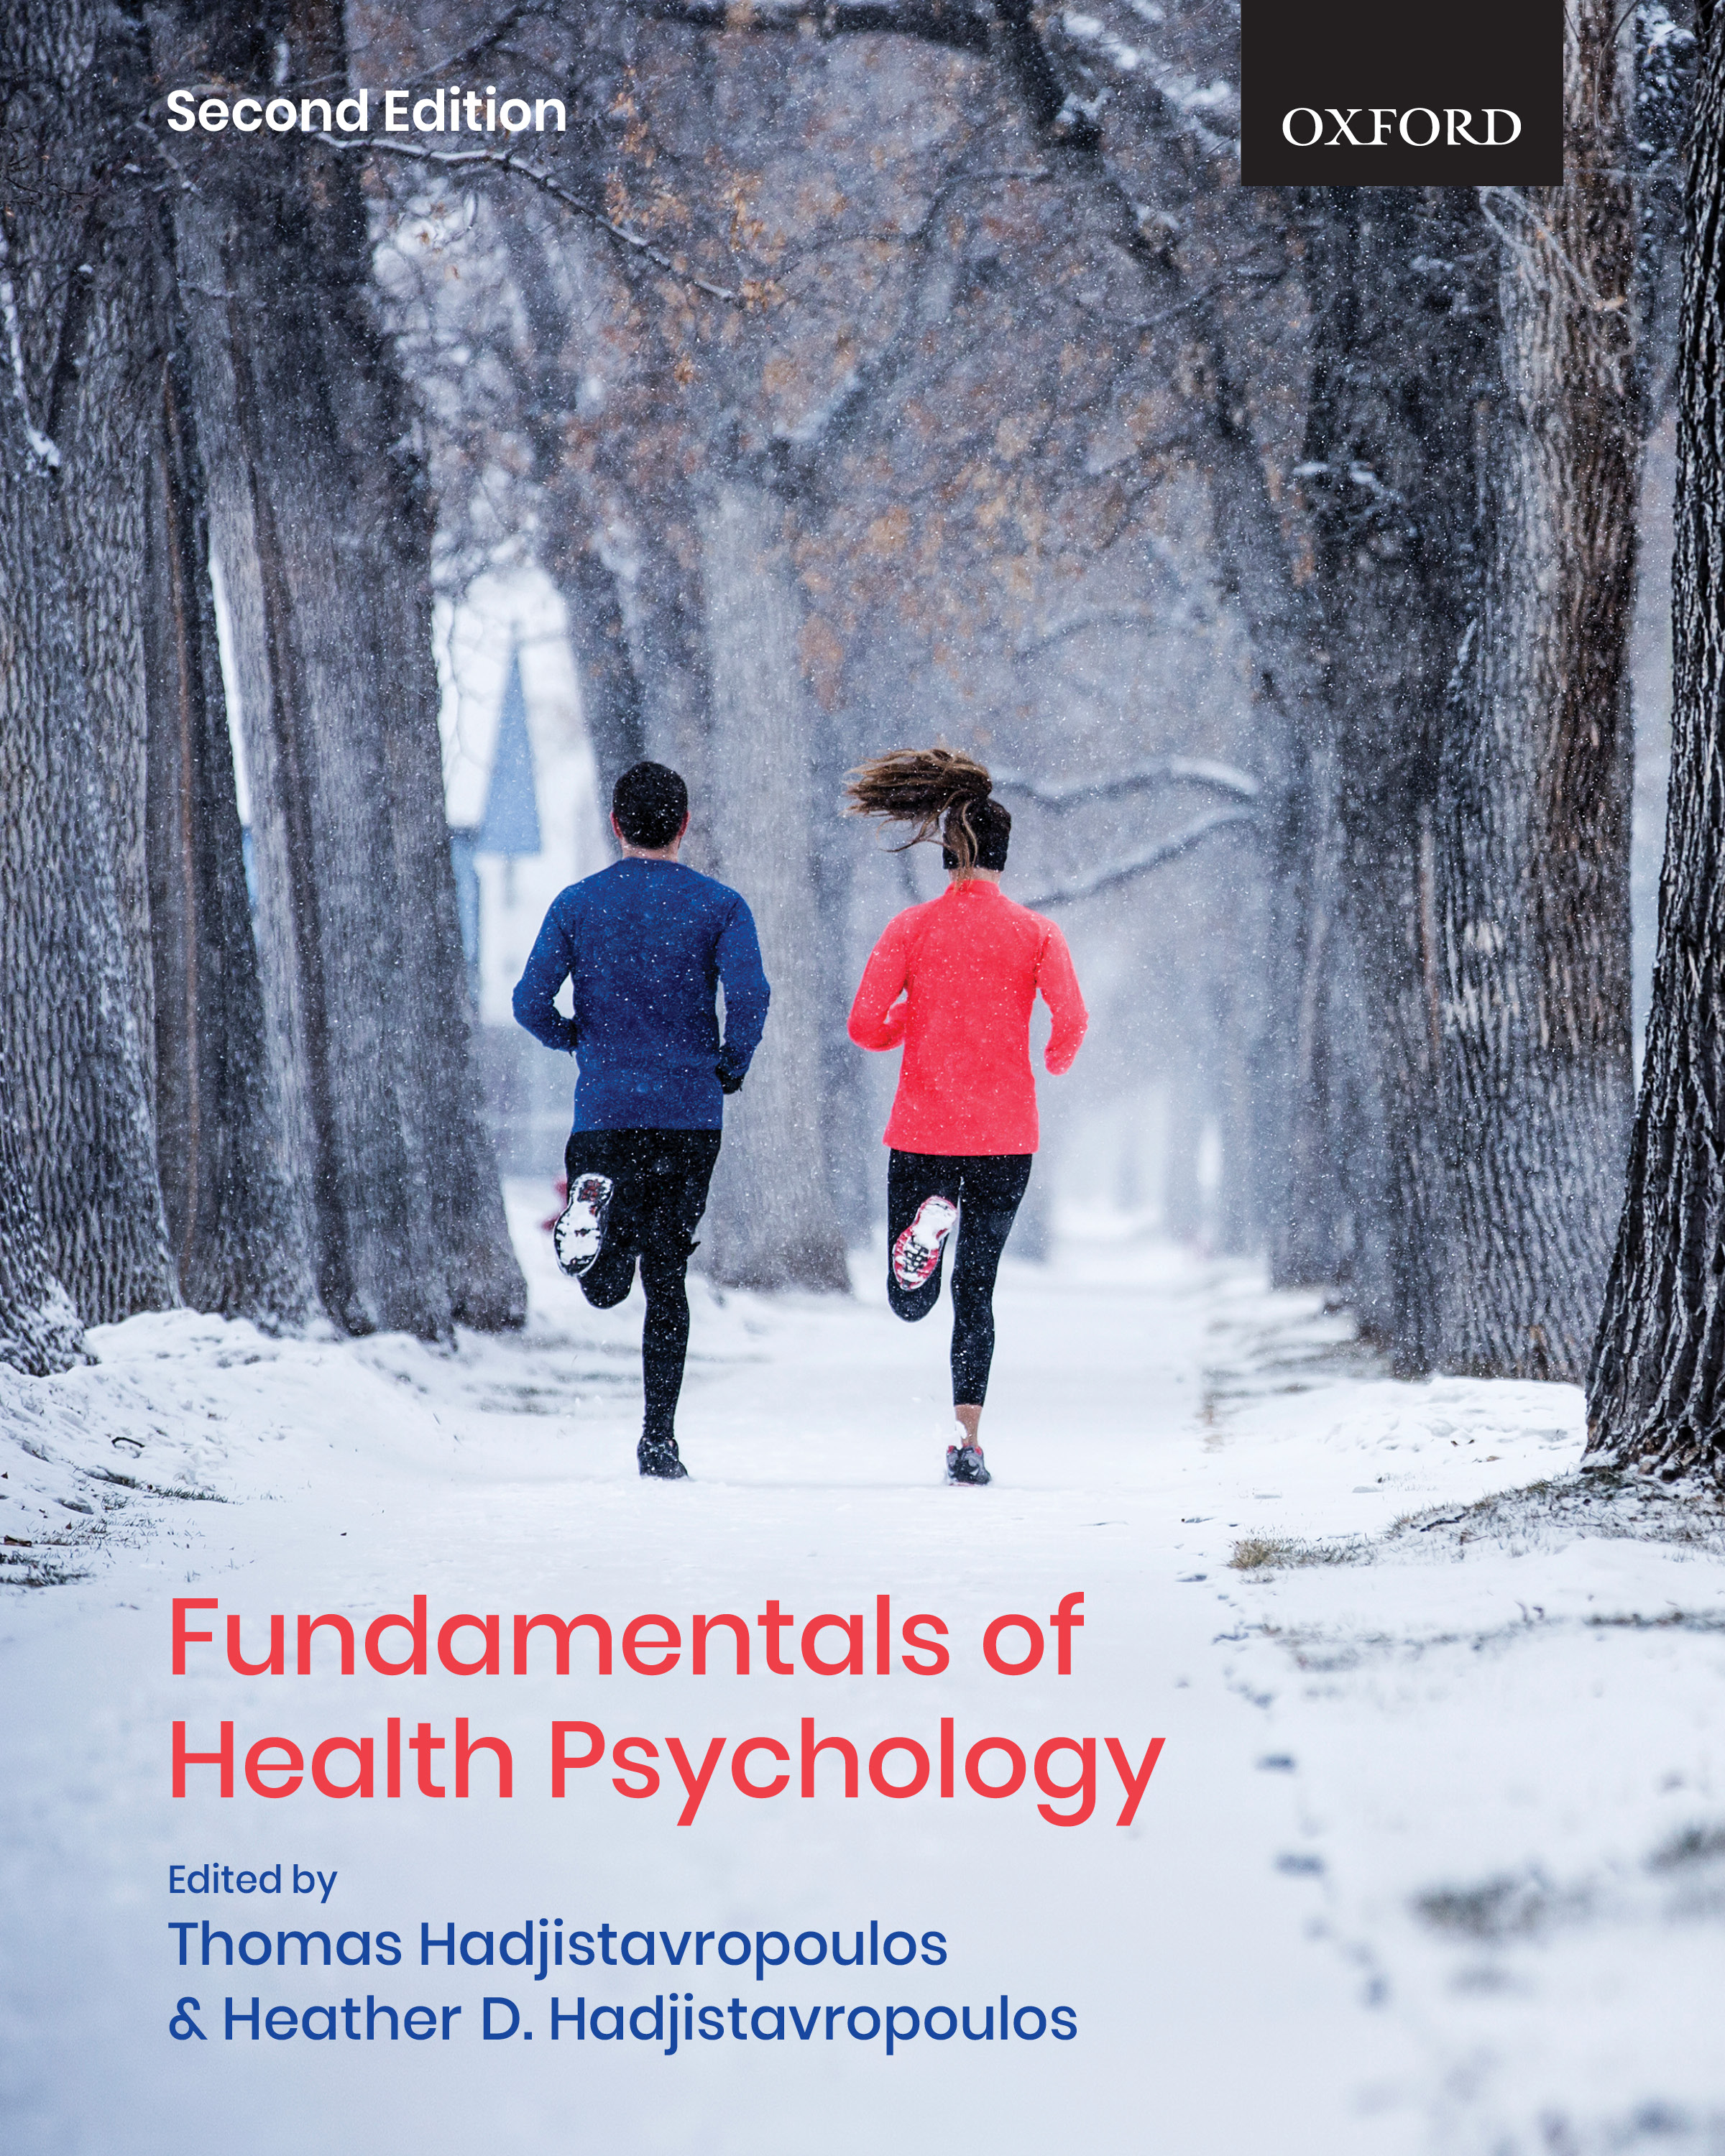 Fundamentals of Health Psychology 2e Instructor Resources